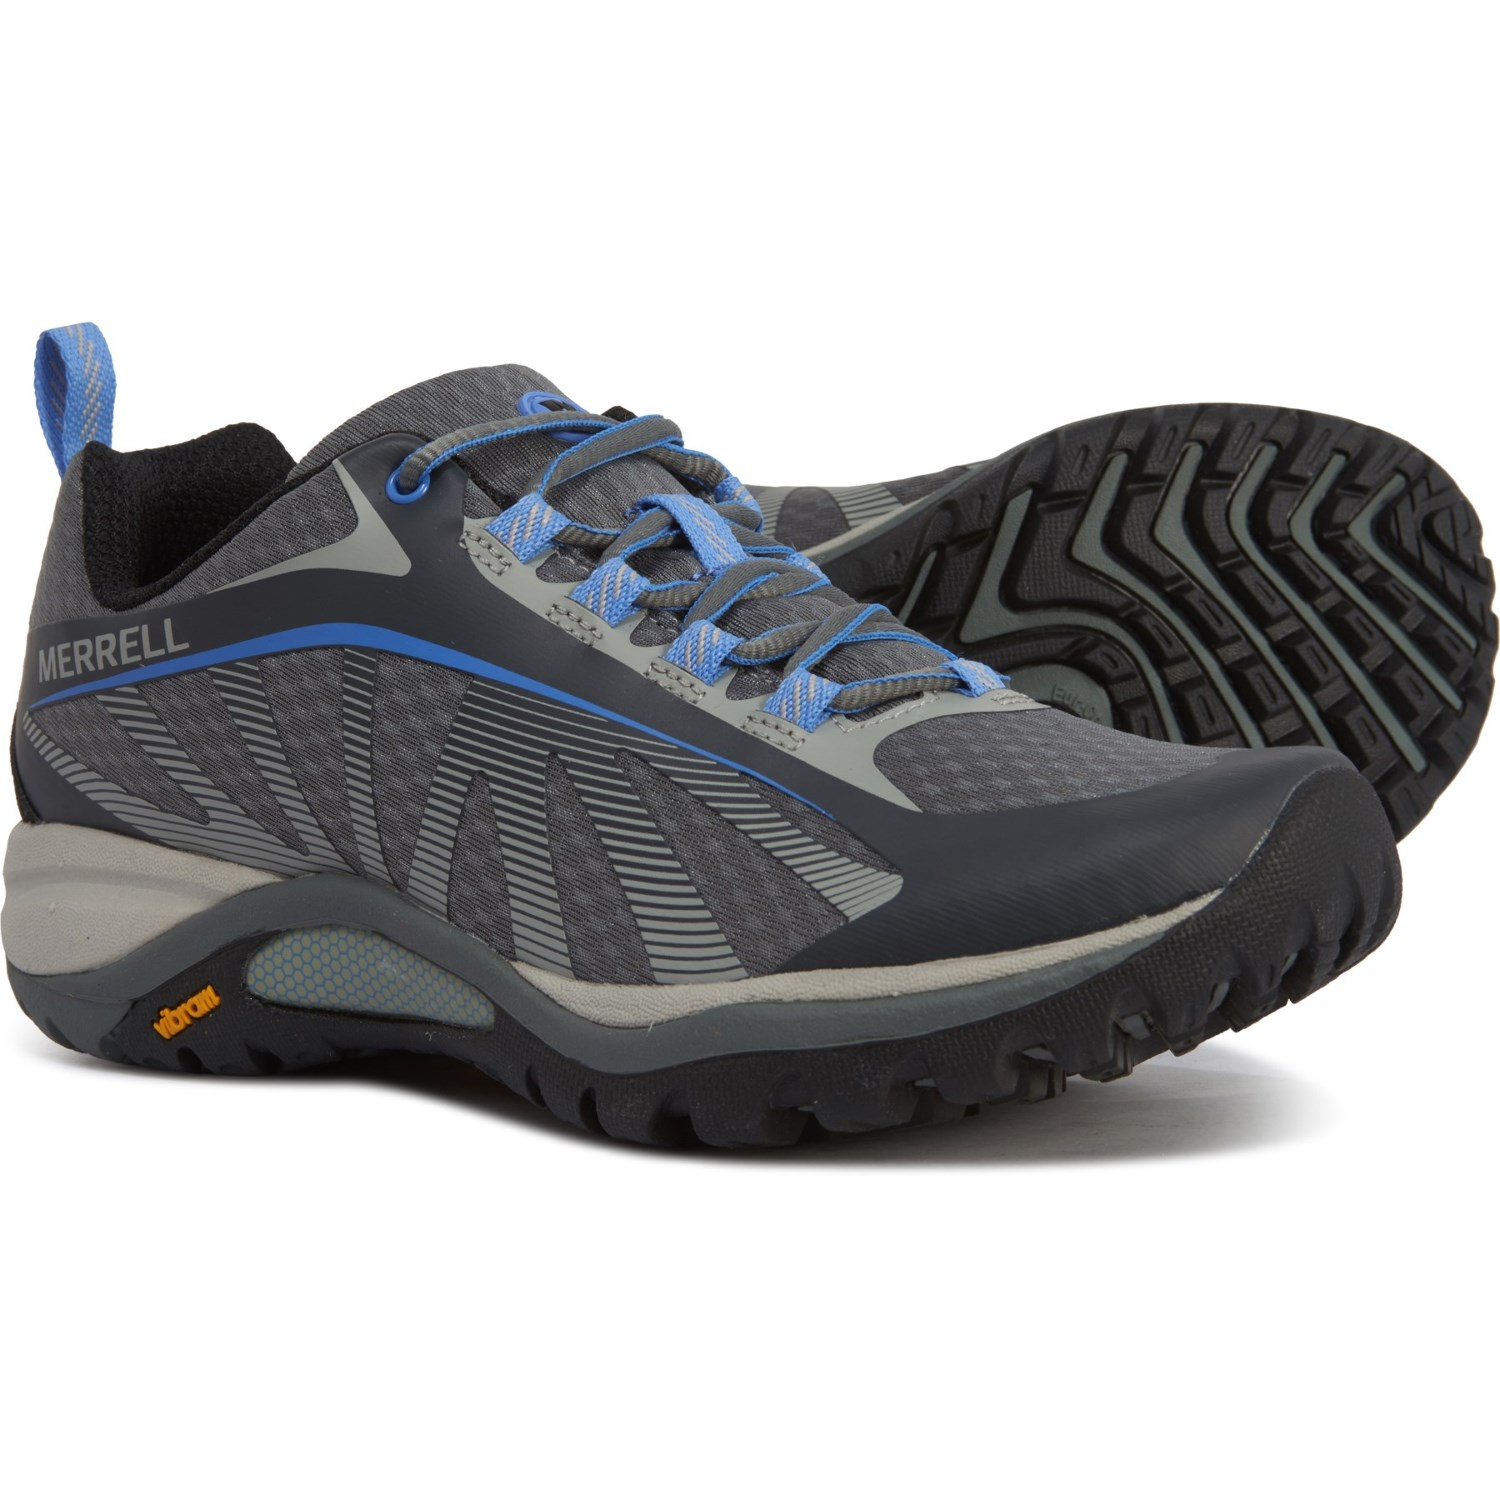 Merrell Womens Siren Edge Q2 Walking Shoes Grey Sports Outdoors Breathable